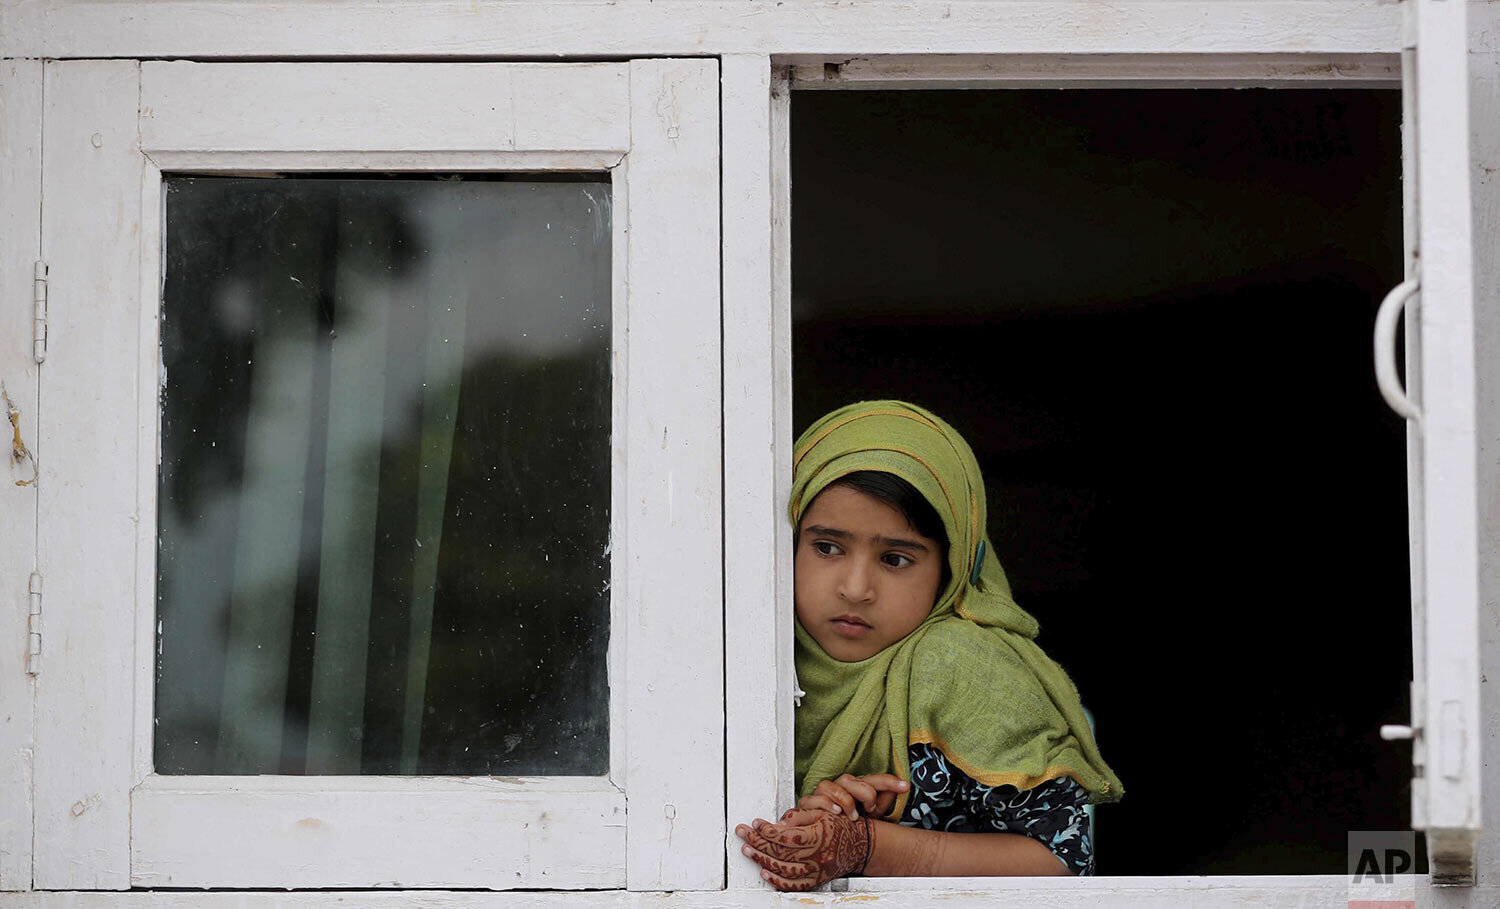 A child watches a protest from the window of a shrine in Srinagar, Indian controlled Kashmir, Friday, Aug. 30, 2019. (AP Photo/Mukhtar Khan)